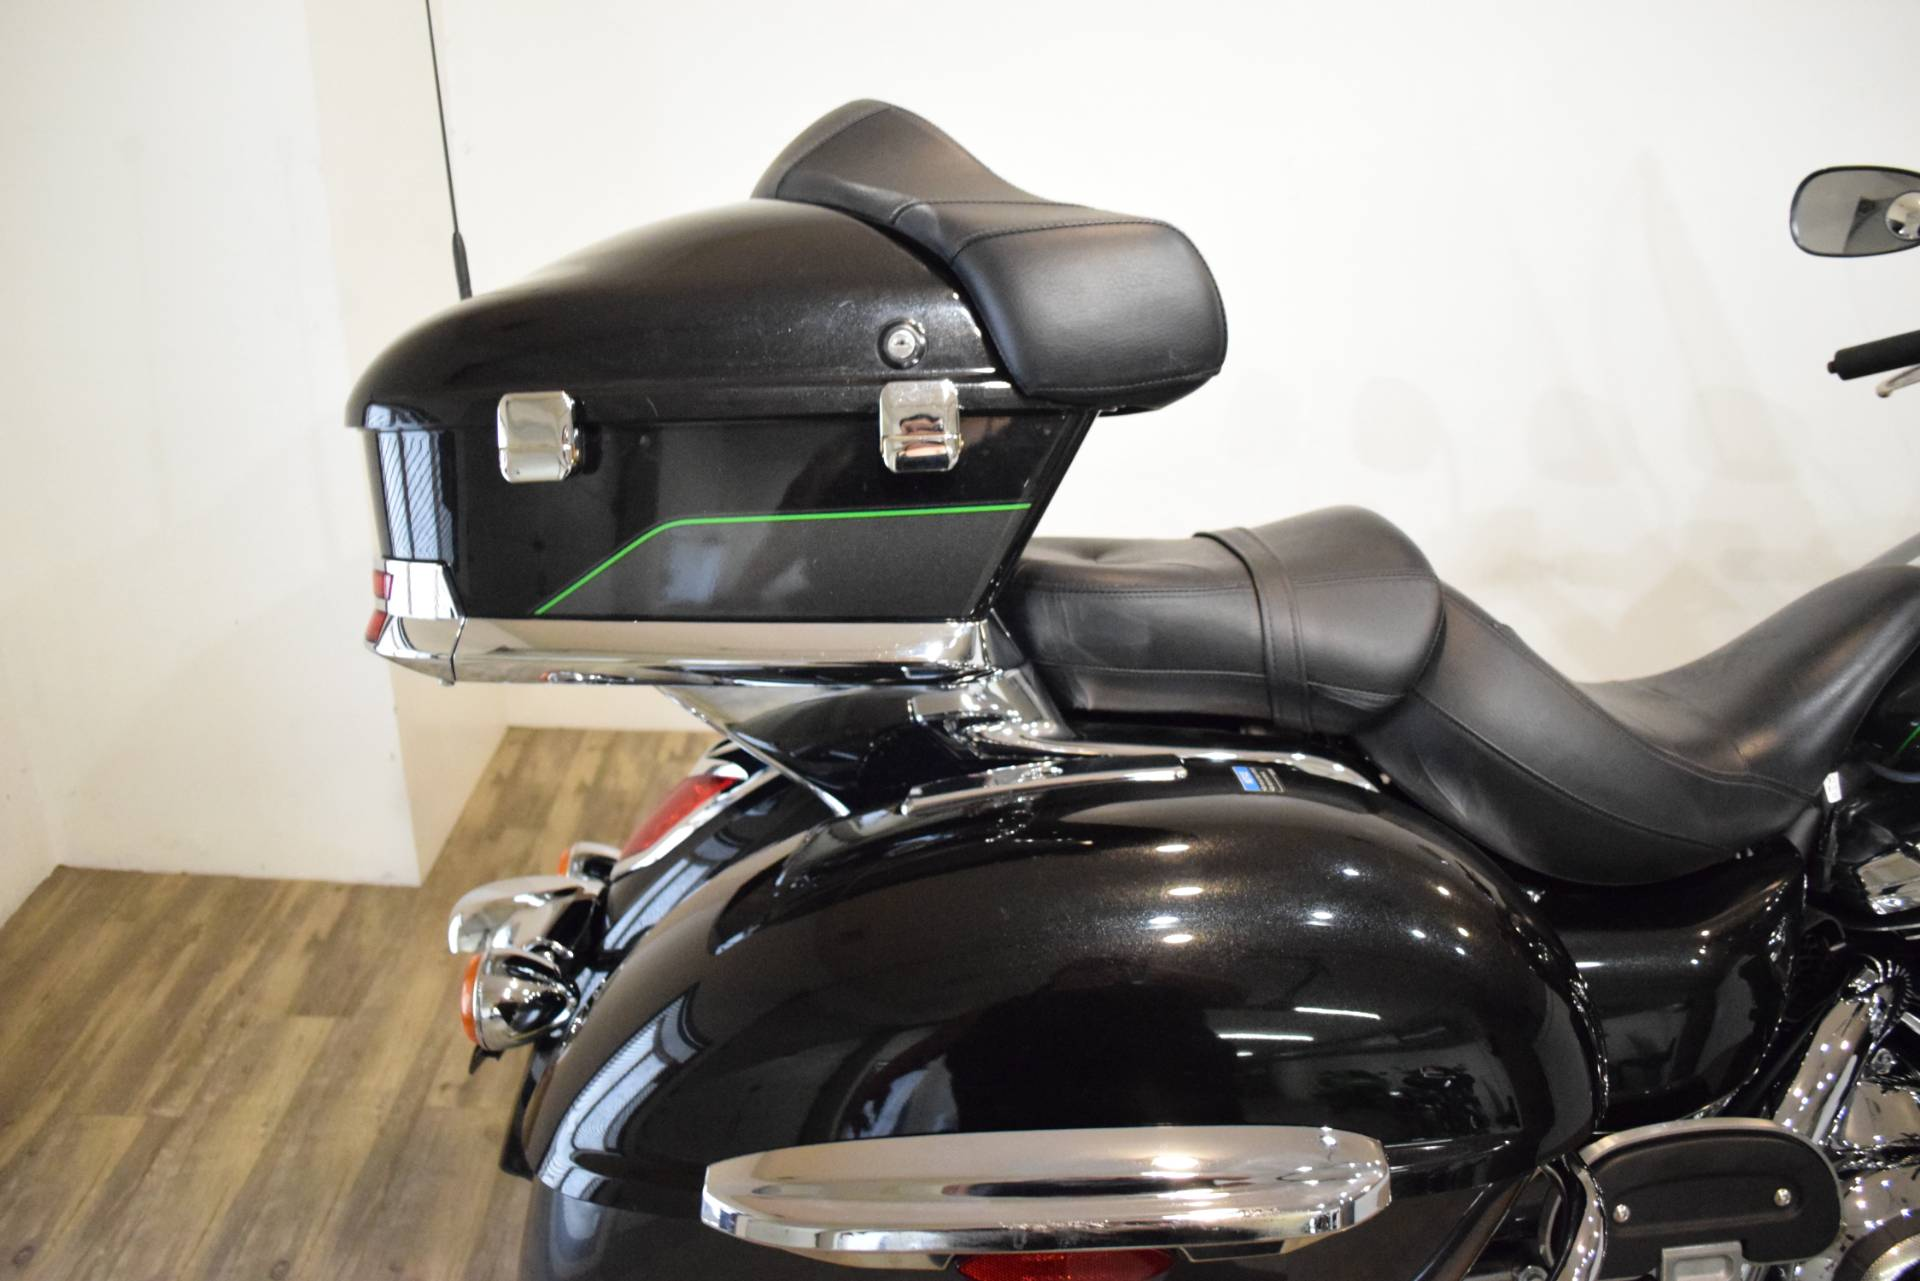 2017 Kawasaki Vulcan 1700 Voyager ABS in Wauconda, Illinois - Photo 7